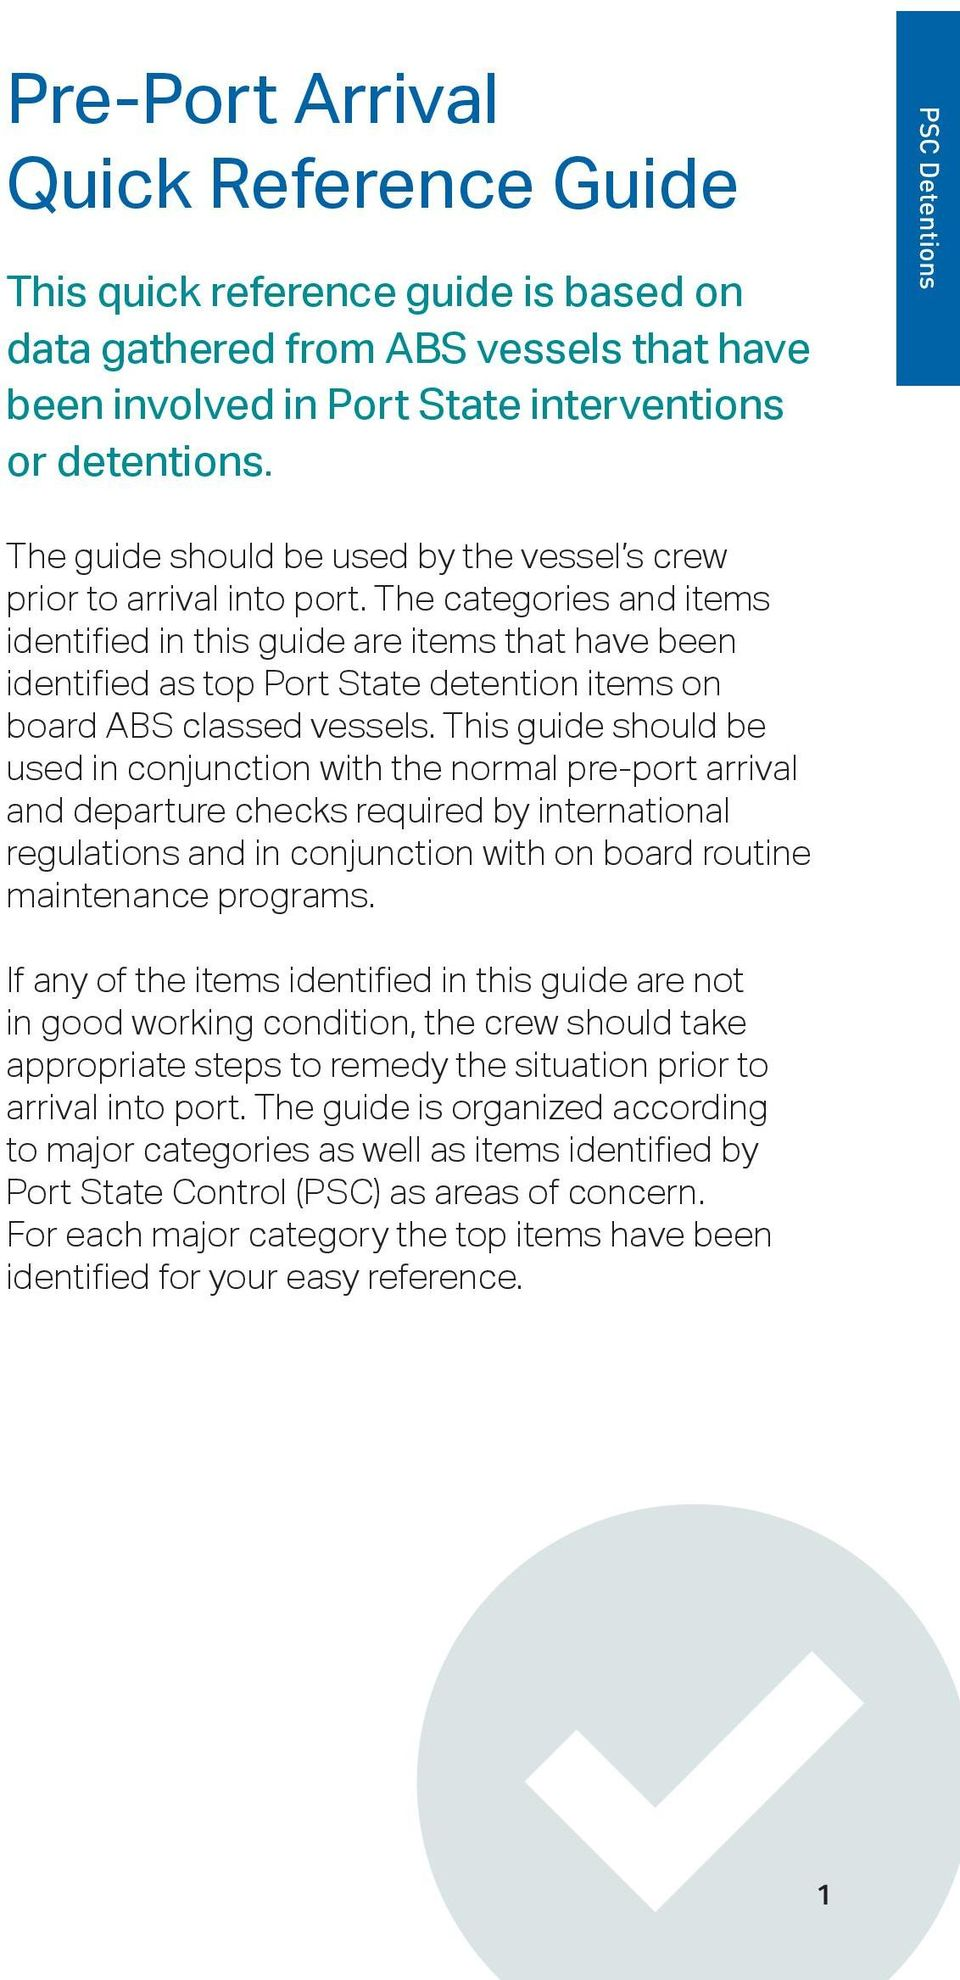 The categories and items identified in this guide are items that have been identified as top Port State detention items on board ABS classed vessels.